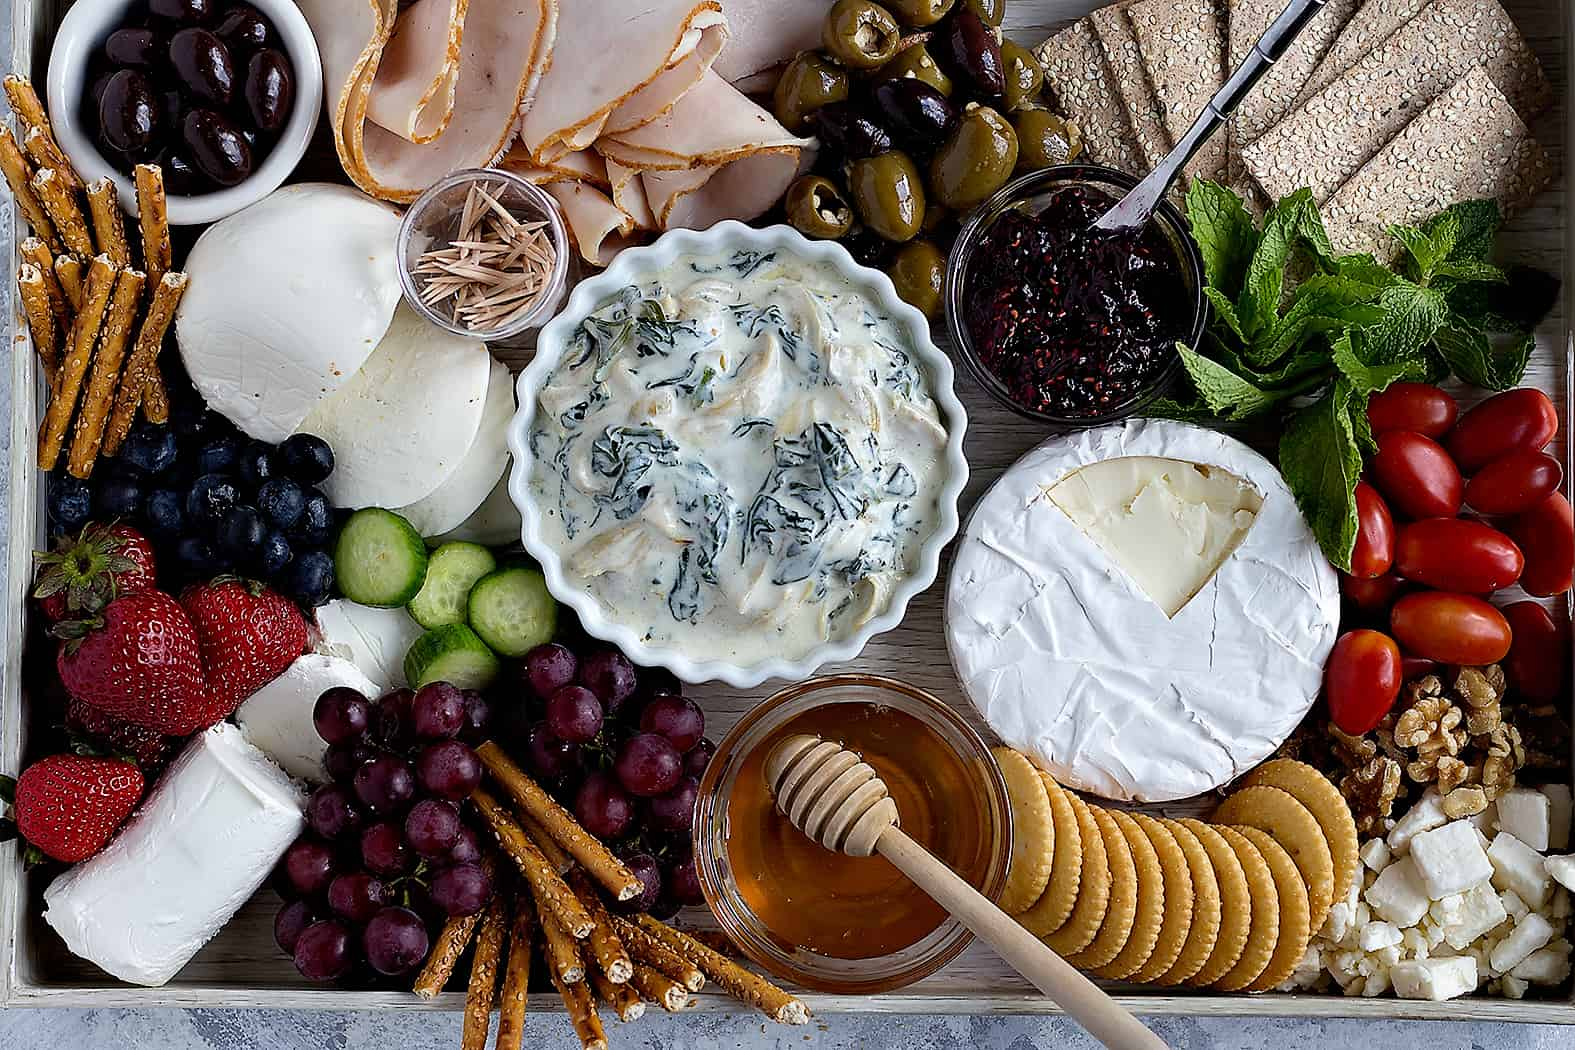 A large and beautiful charcuterie board with cheese, olives, fruit, meat and veggies